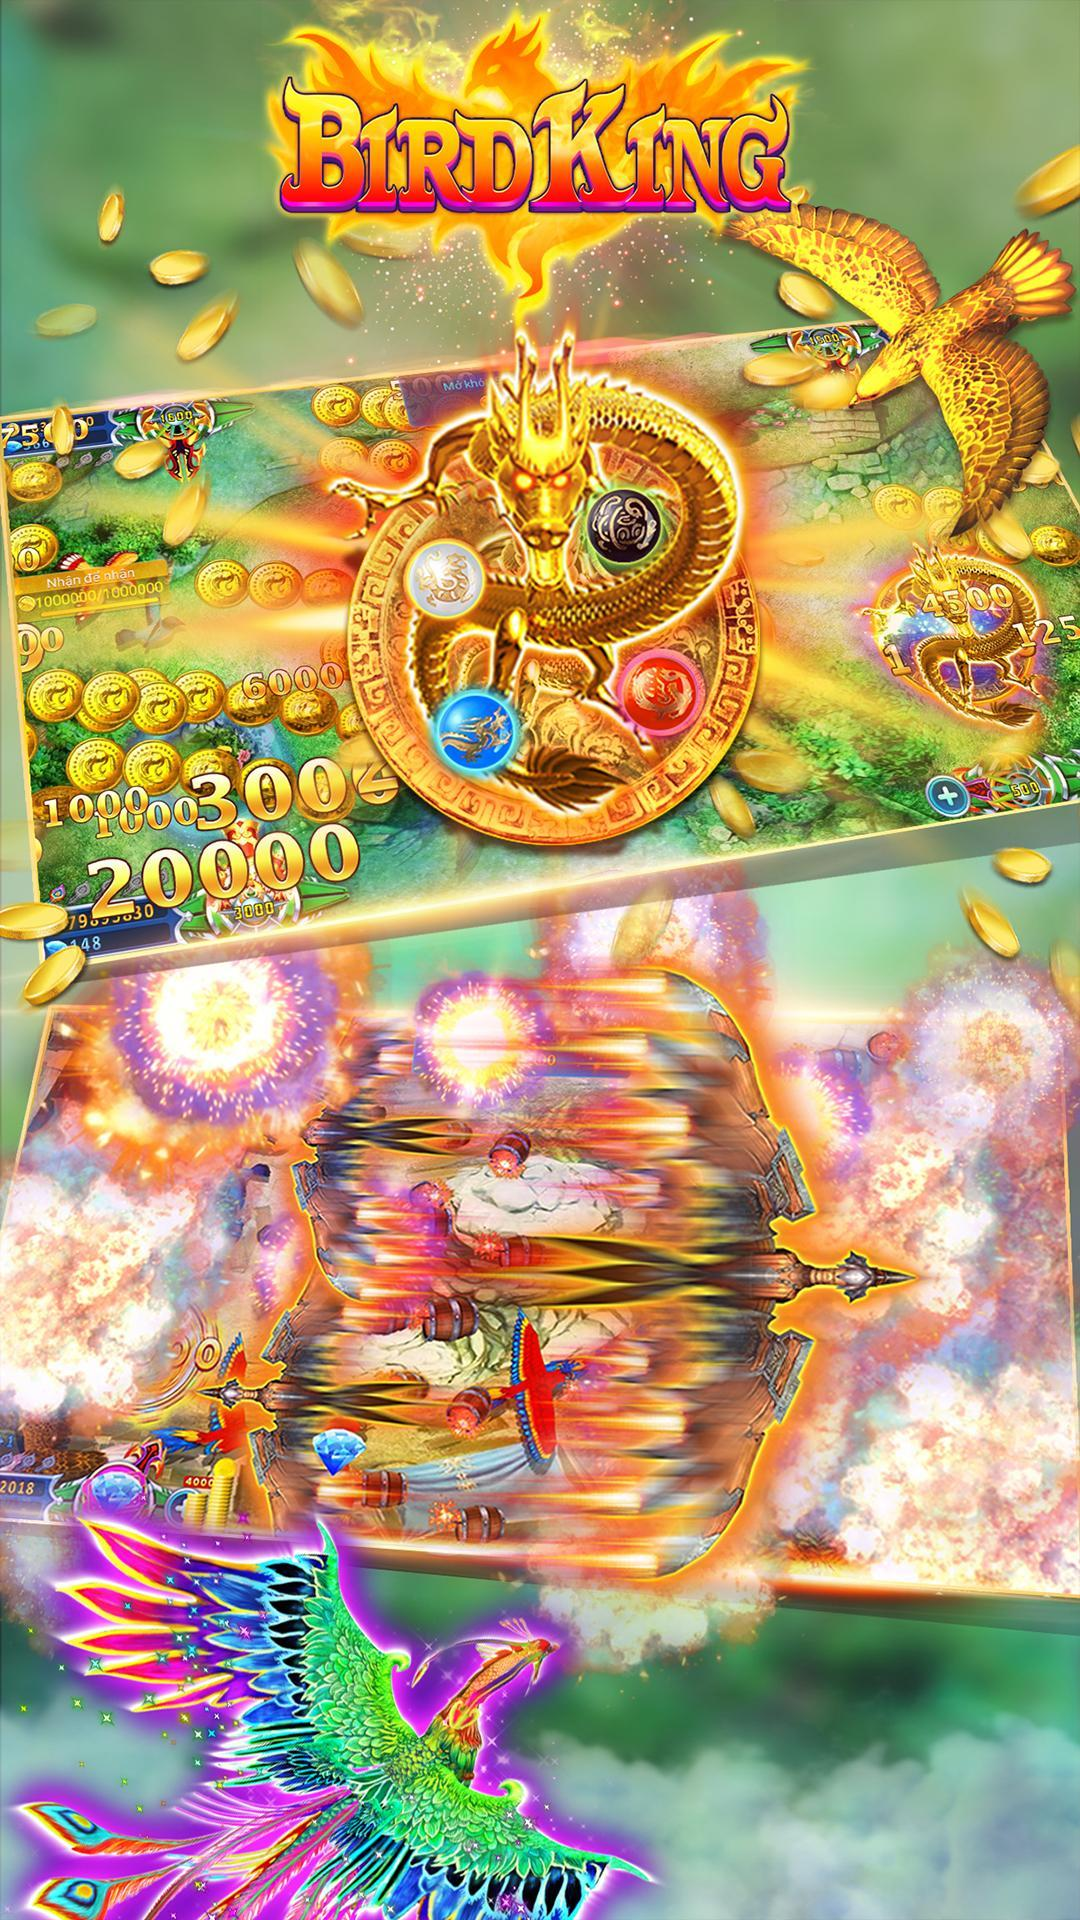 Dragon King Fishing Online-Arcade  Fish Games 5.2.0 Screenshot 12